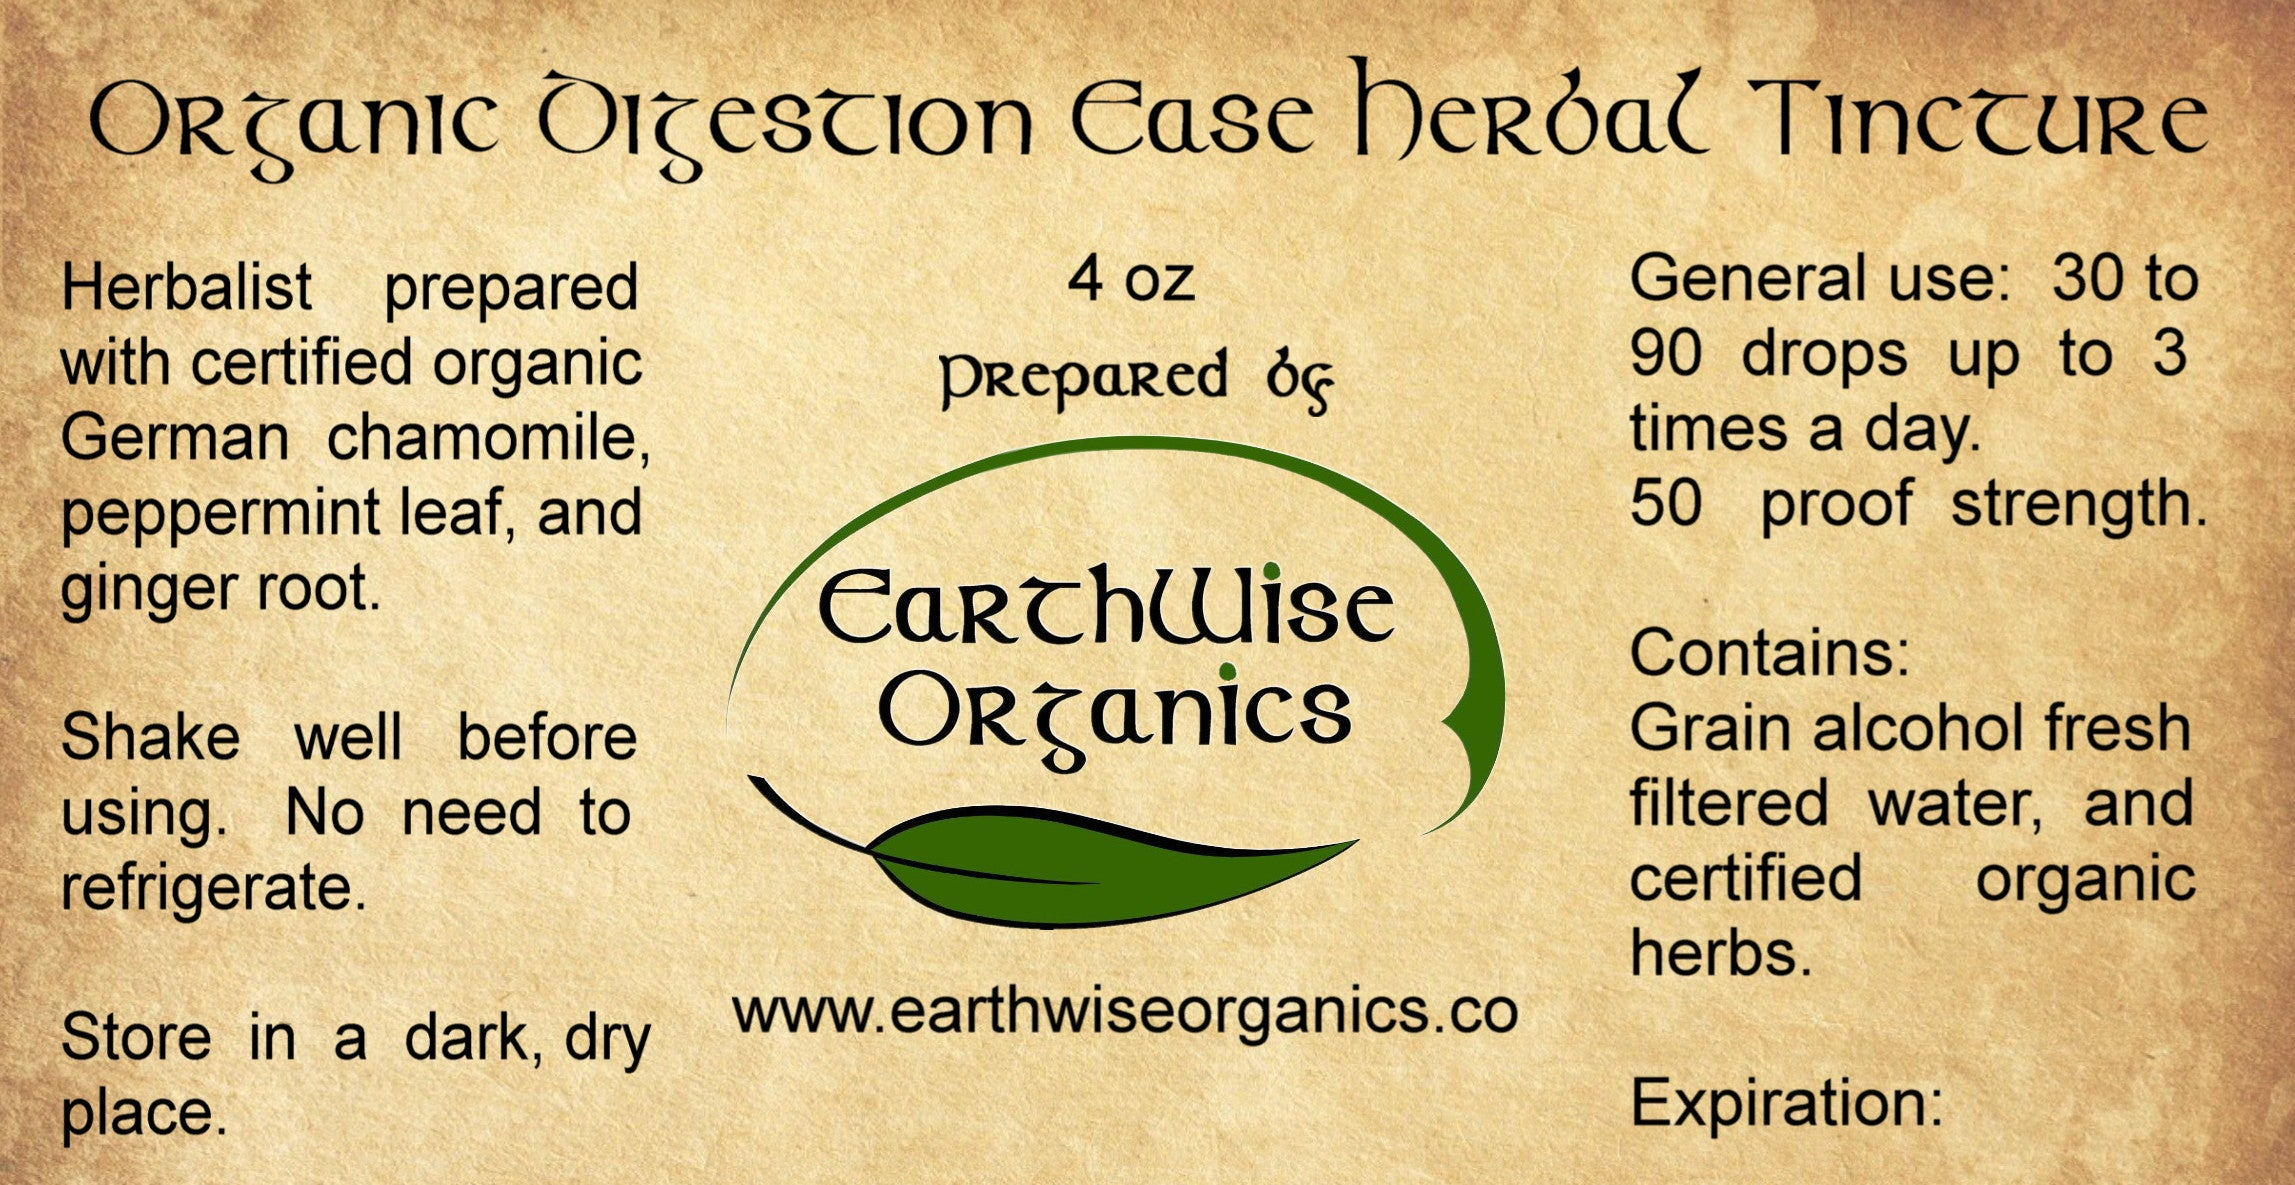 digestion ease organic herbal tincture label